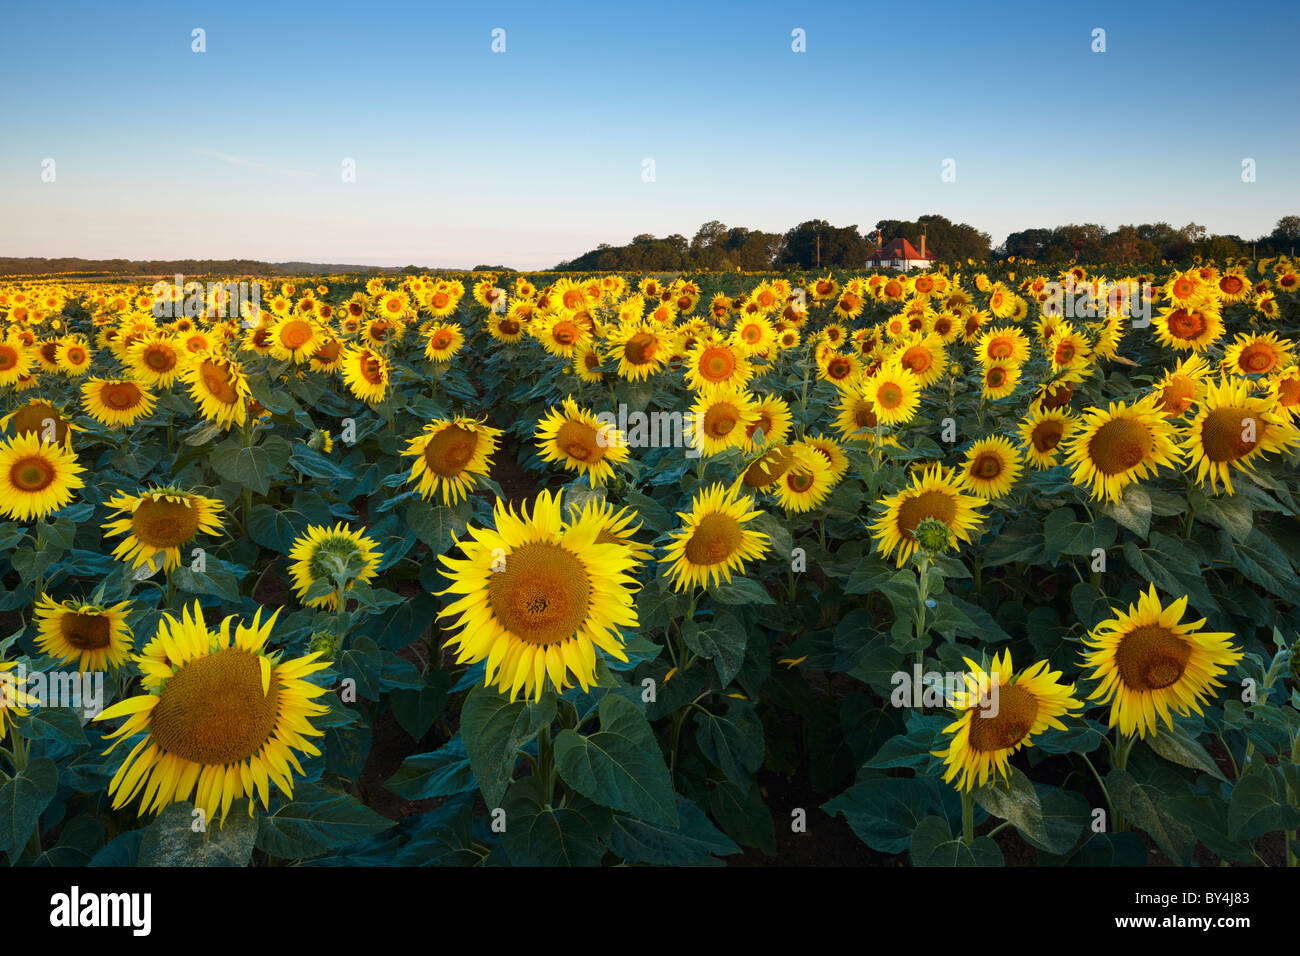 Field of sunflowers West Sussex. - Stock Image